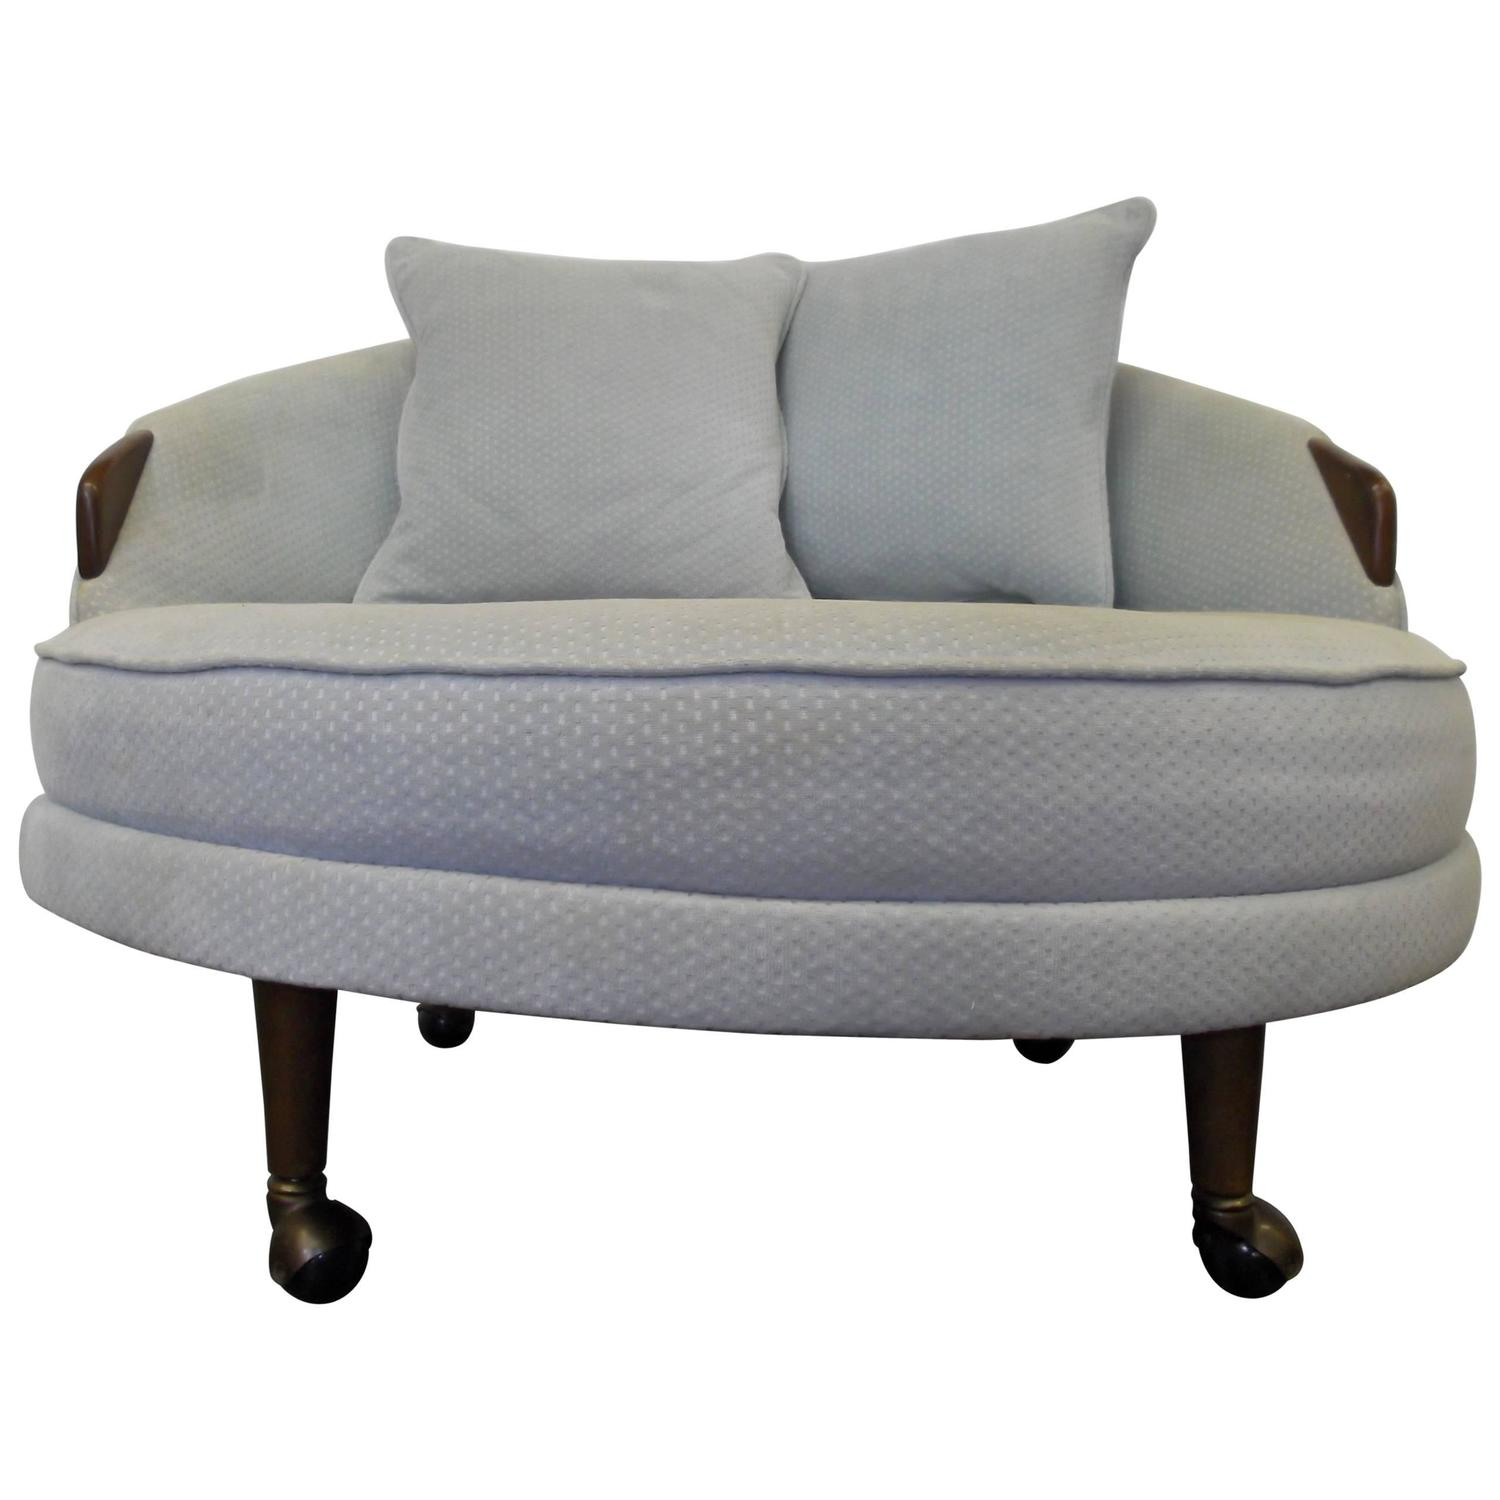 Antique lounge chairs - Adrian Pearsall Havana Round Lounge Chair